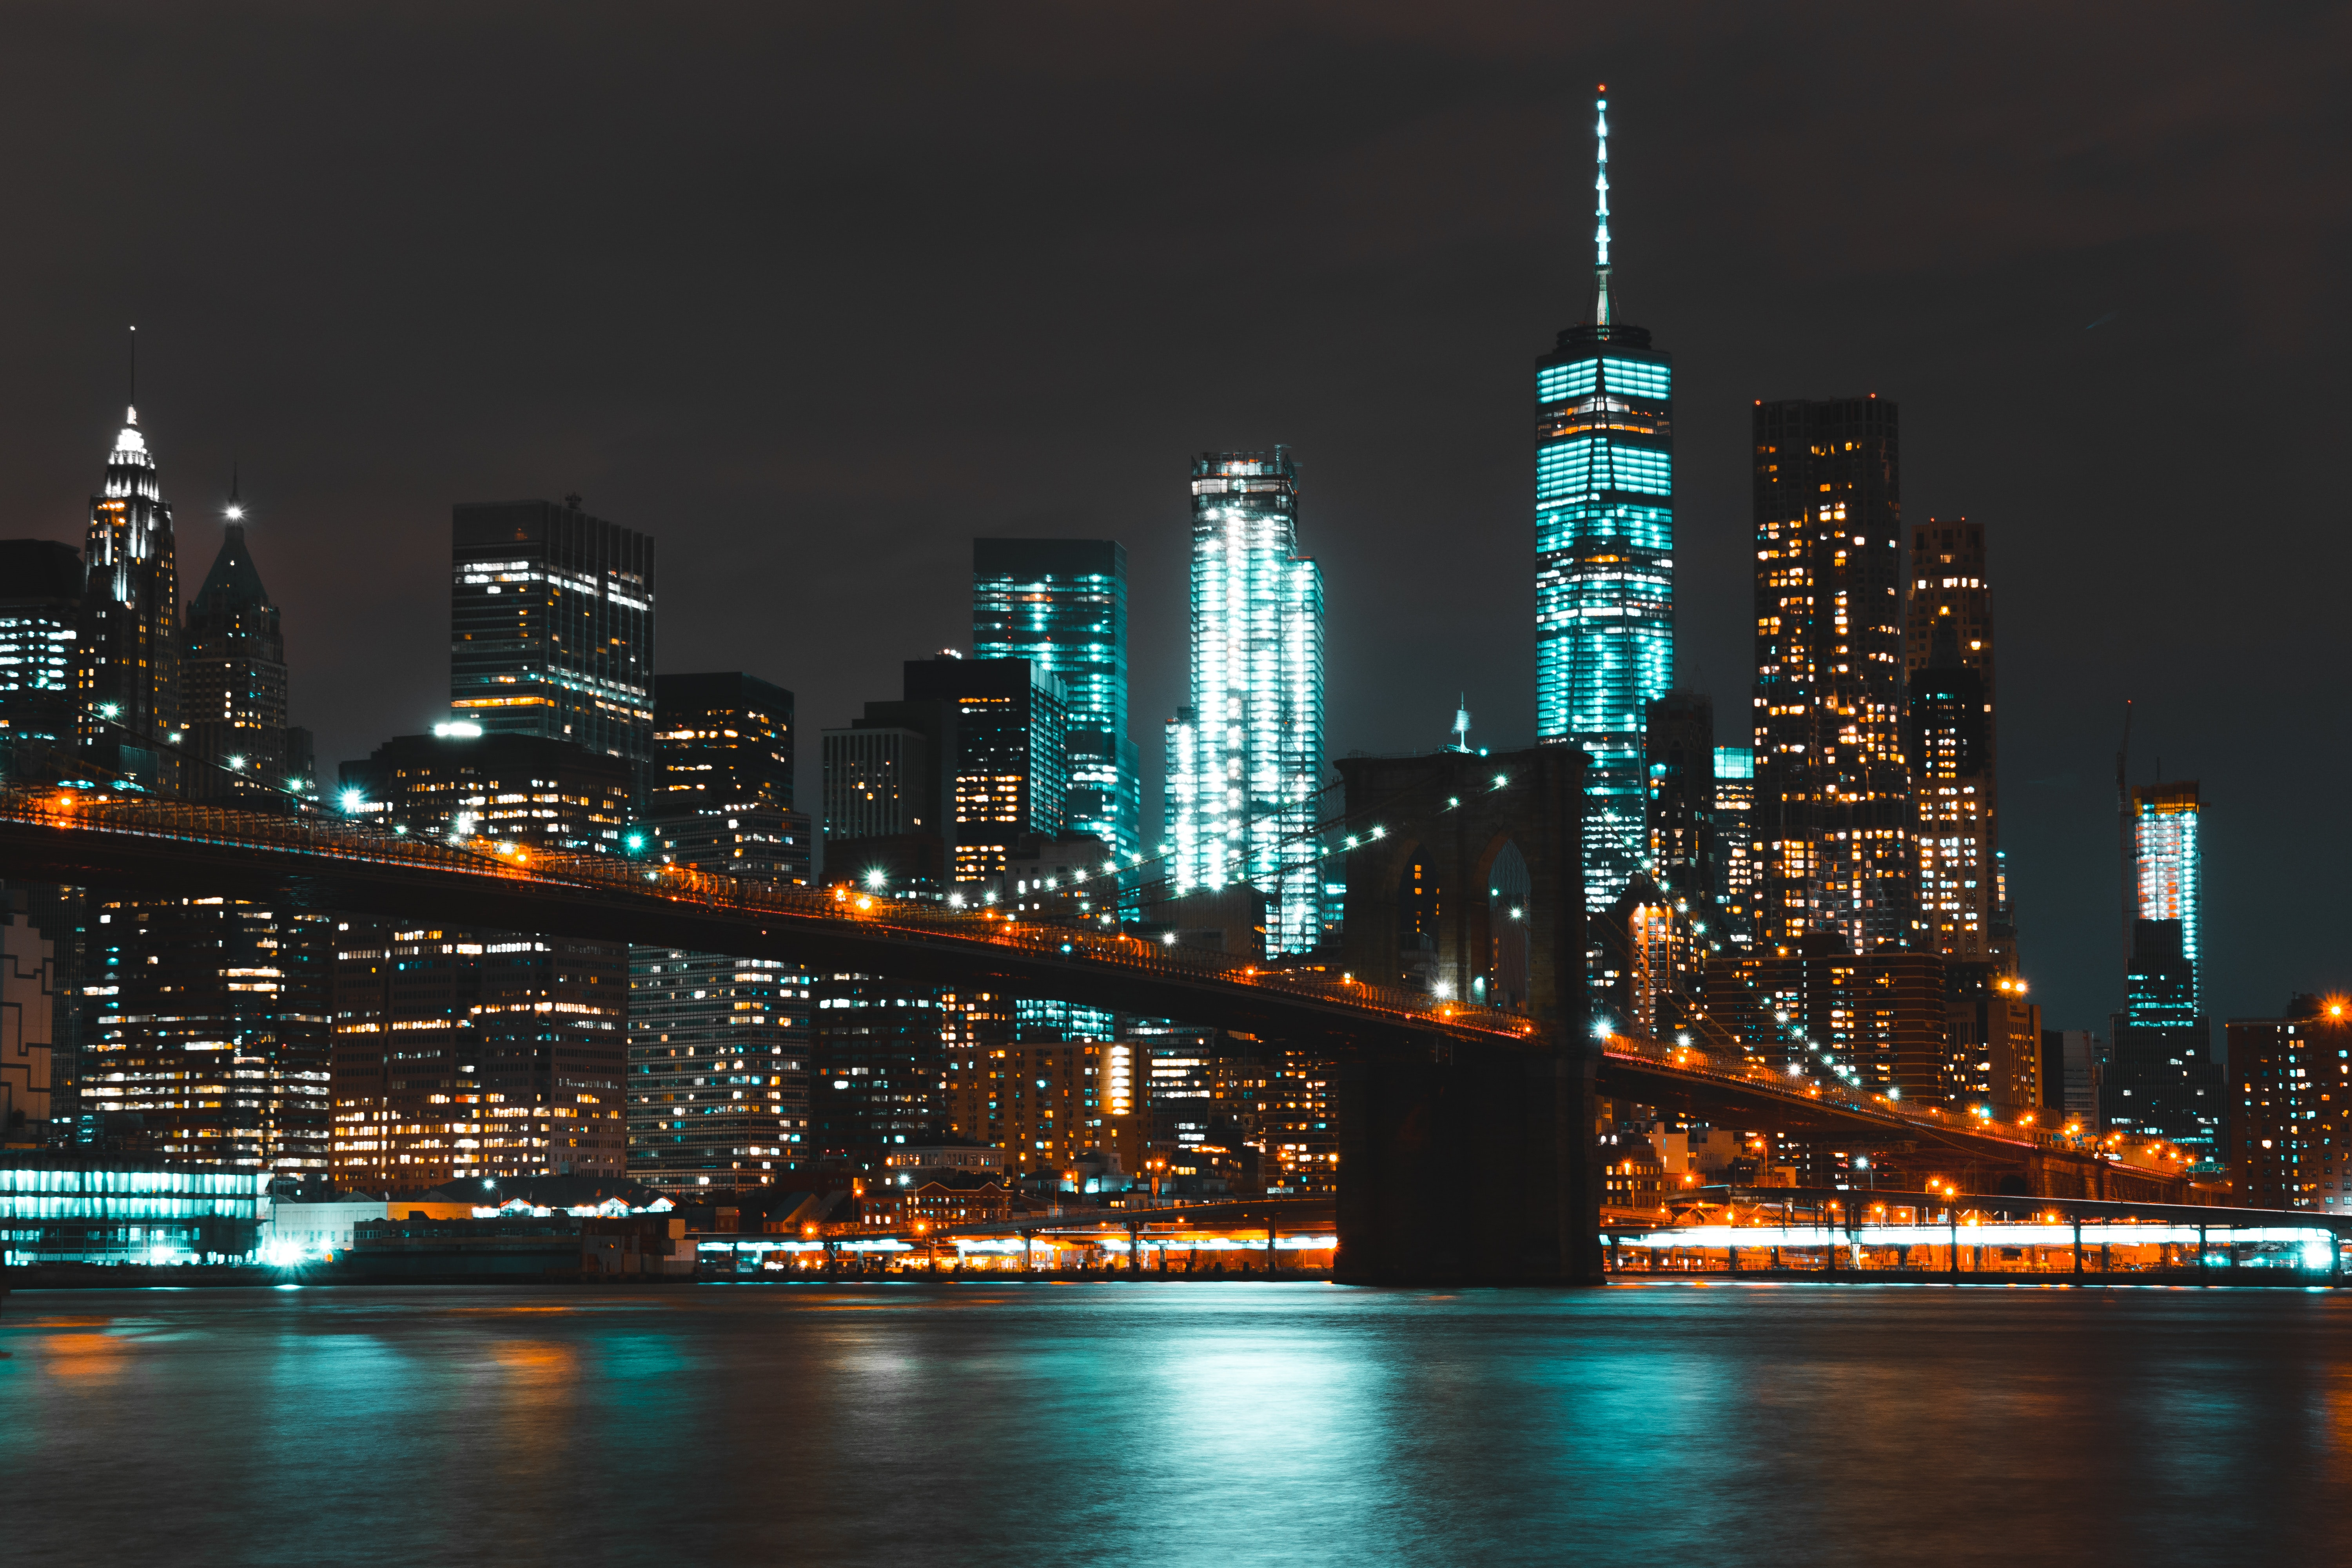 new york city wallpaper · pexels · free stock photos